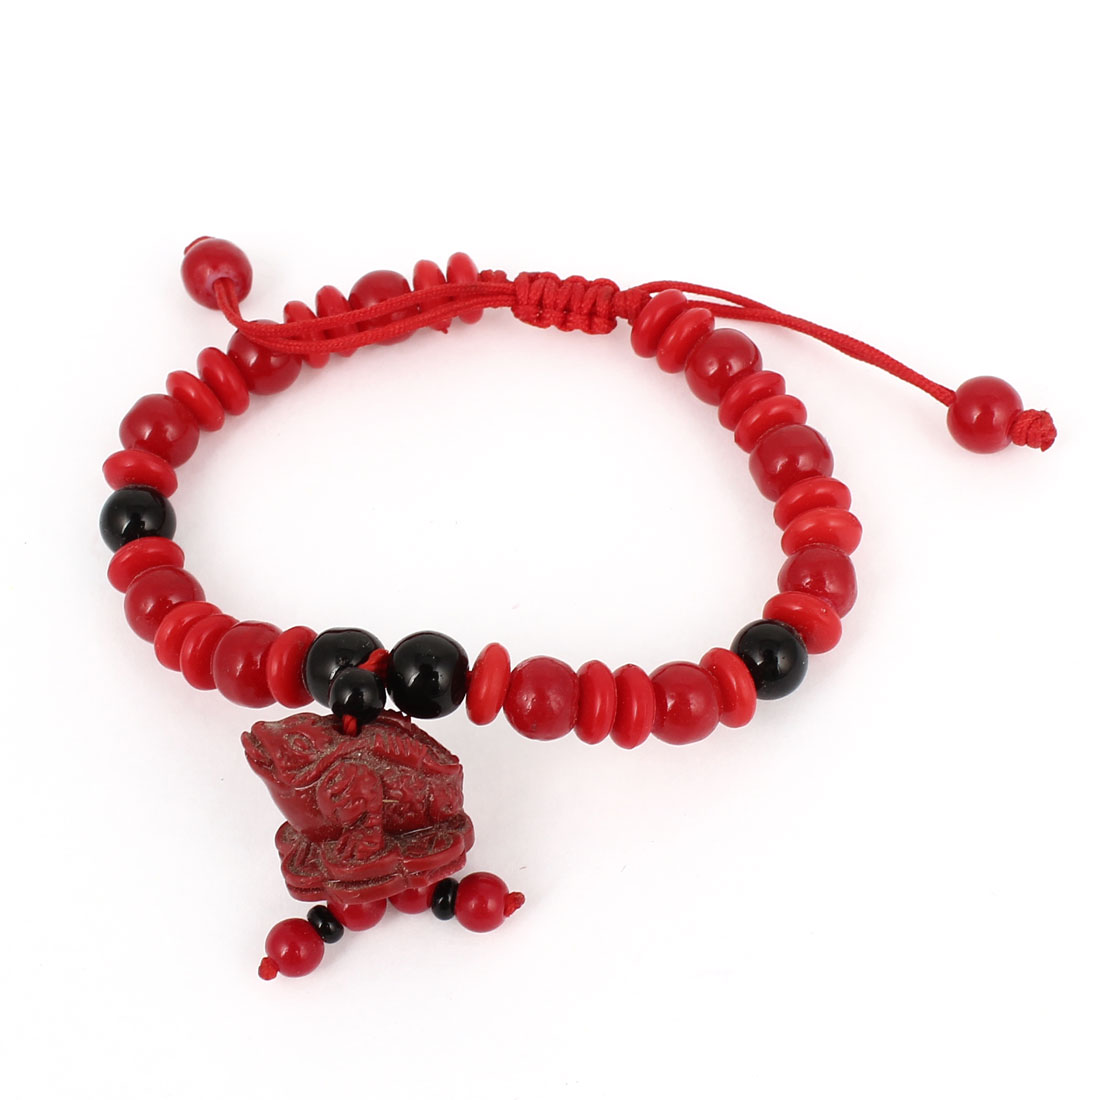 Plastic Carved Bufonid Decor Black Red Beads Chain Draw String Bracelet Bangle